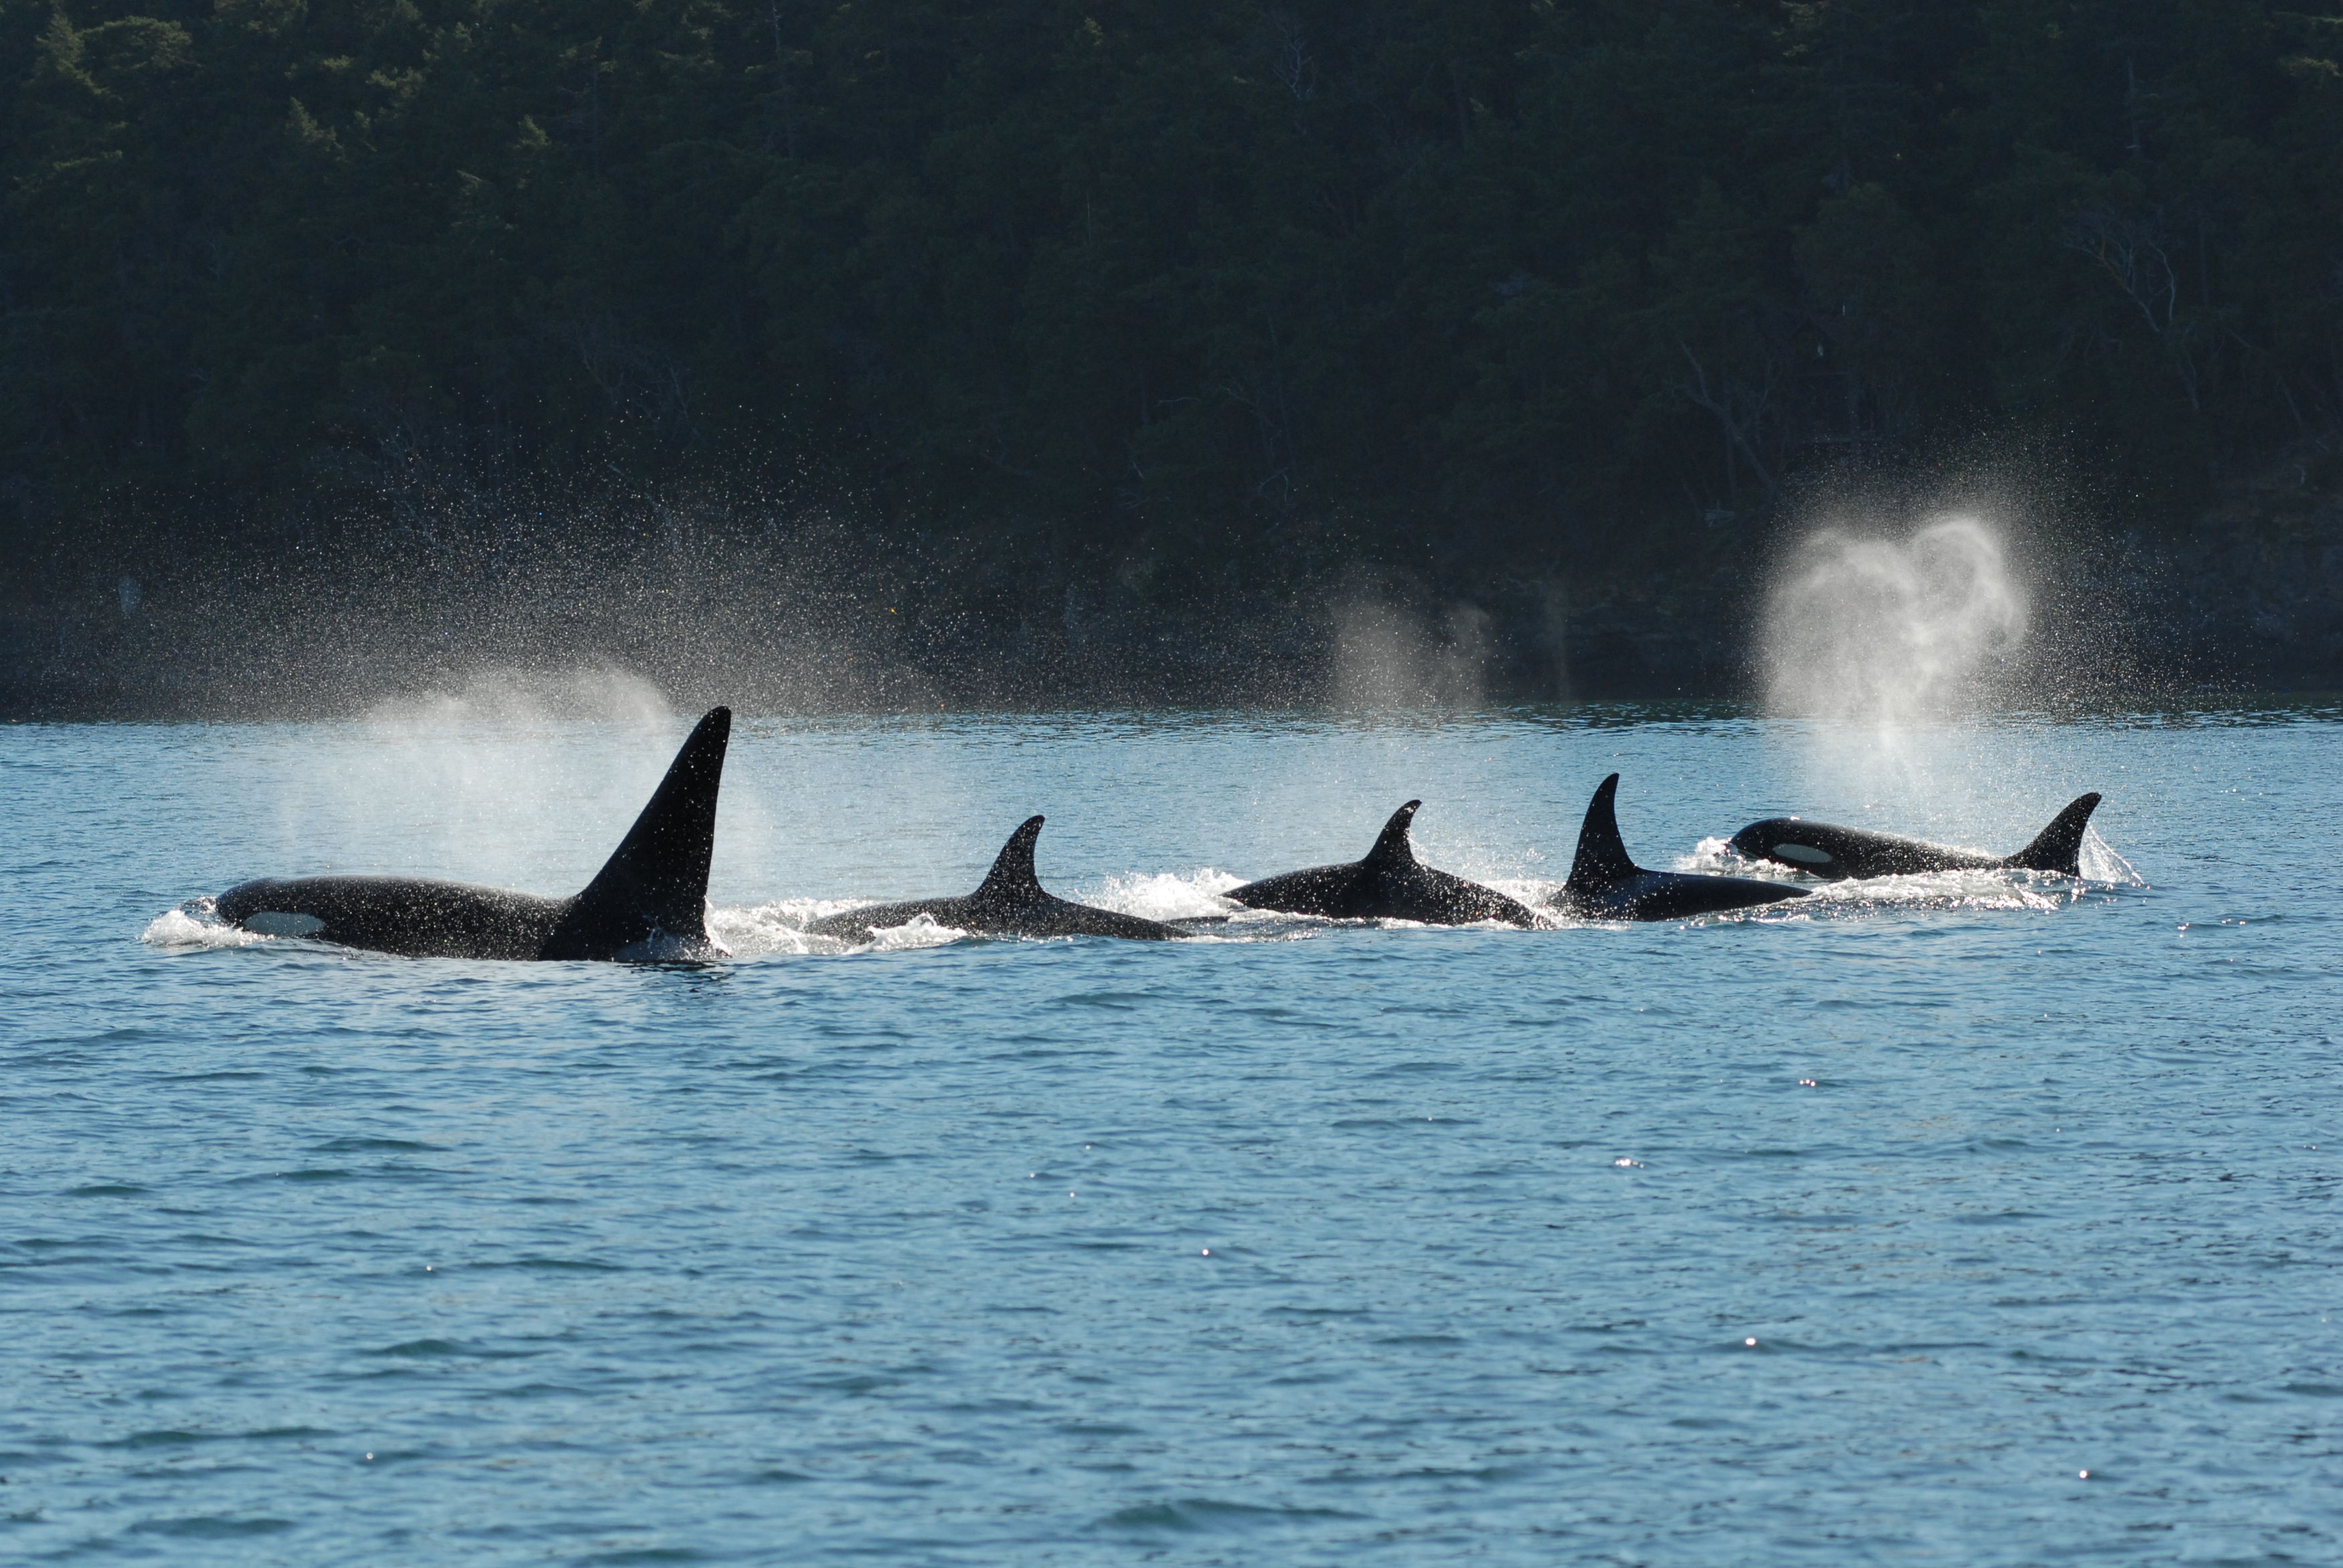 You had me at 'hello!': How killer whales mimic human speech